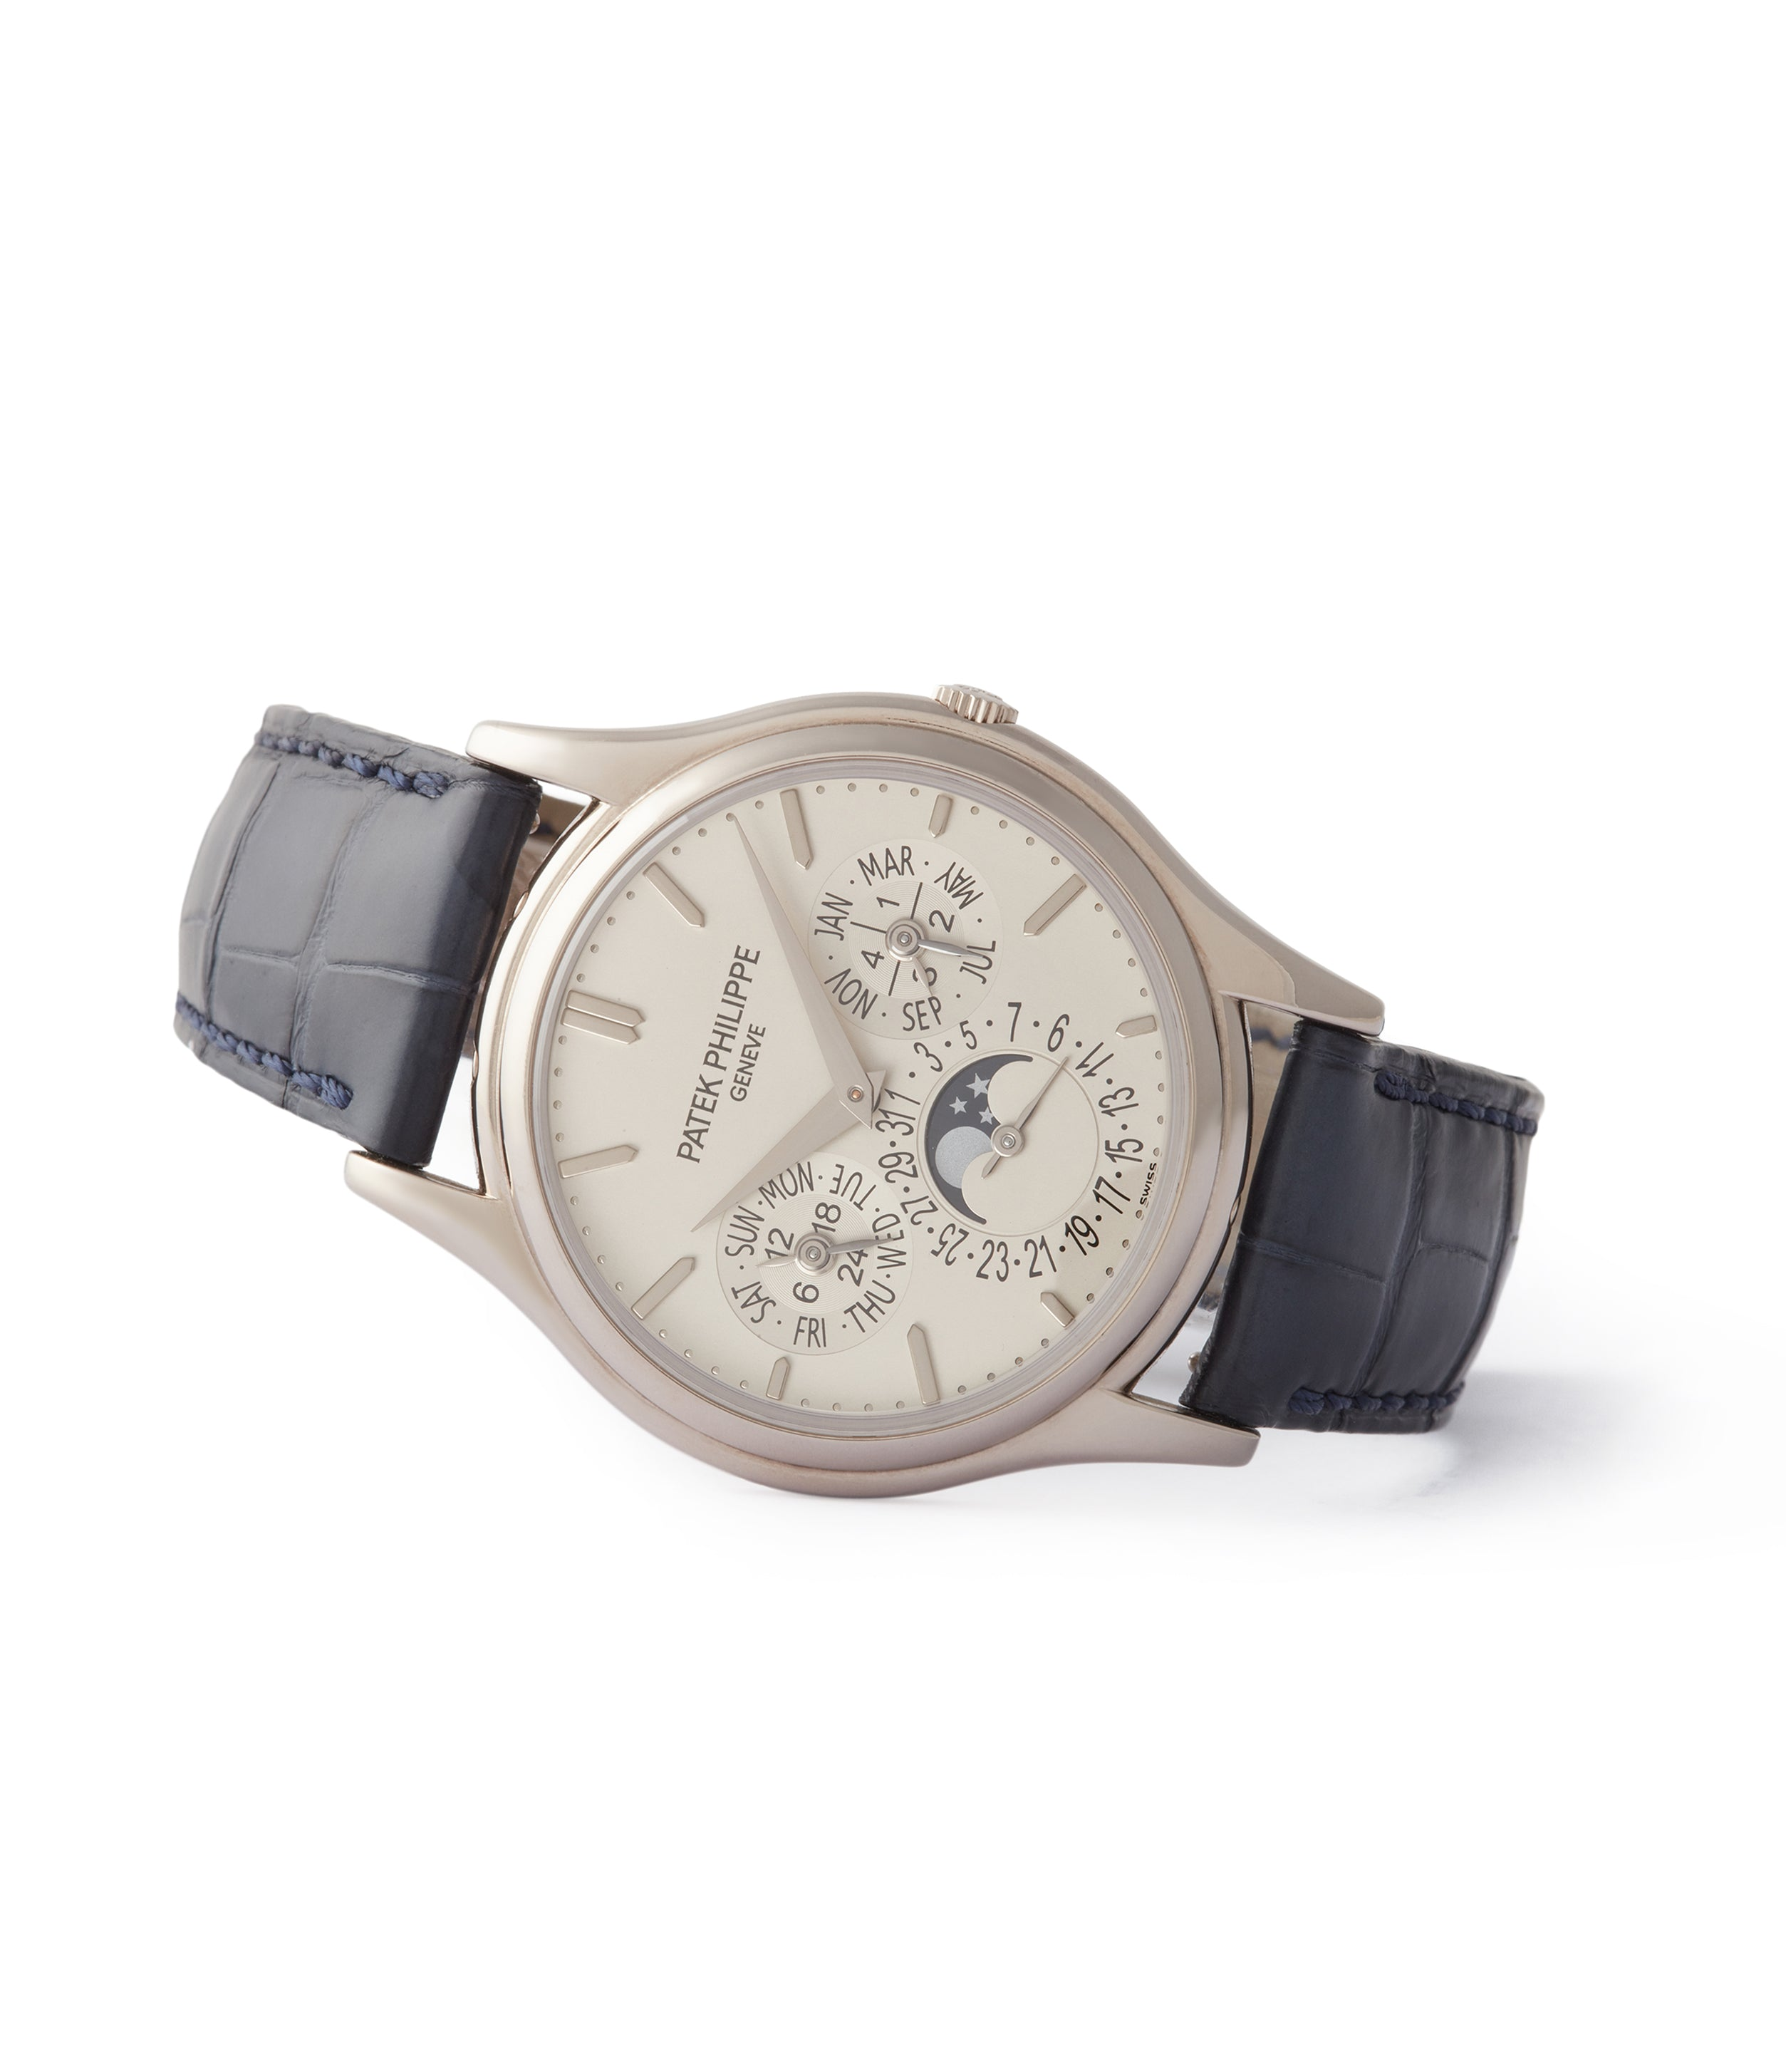 side-shot rare Patek Philippe Perpetual Calendar 5140G moonphase white gold silver dial pre-owned dress watch for sale online A Collected Man London UK specialist rare watches